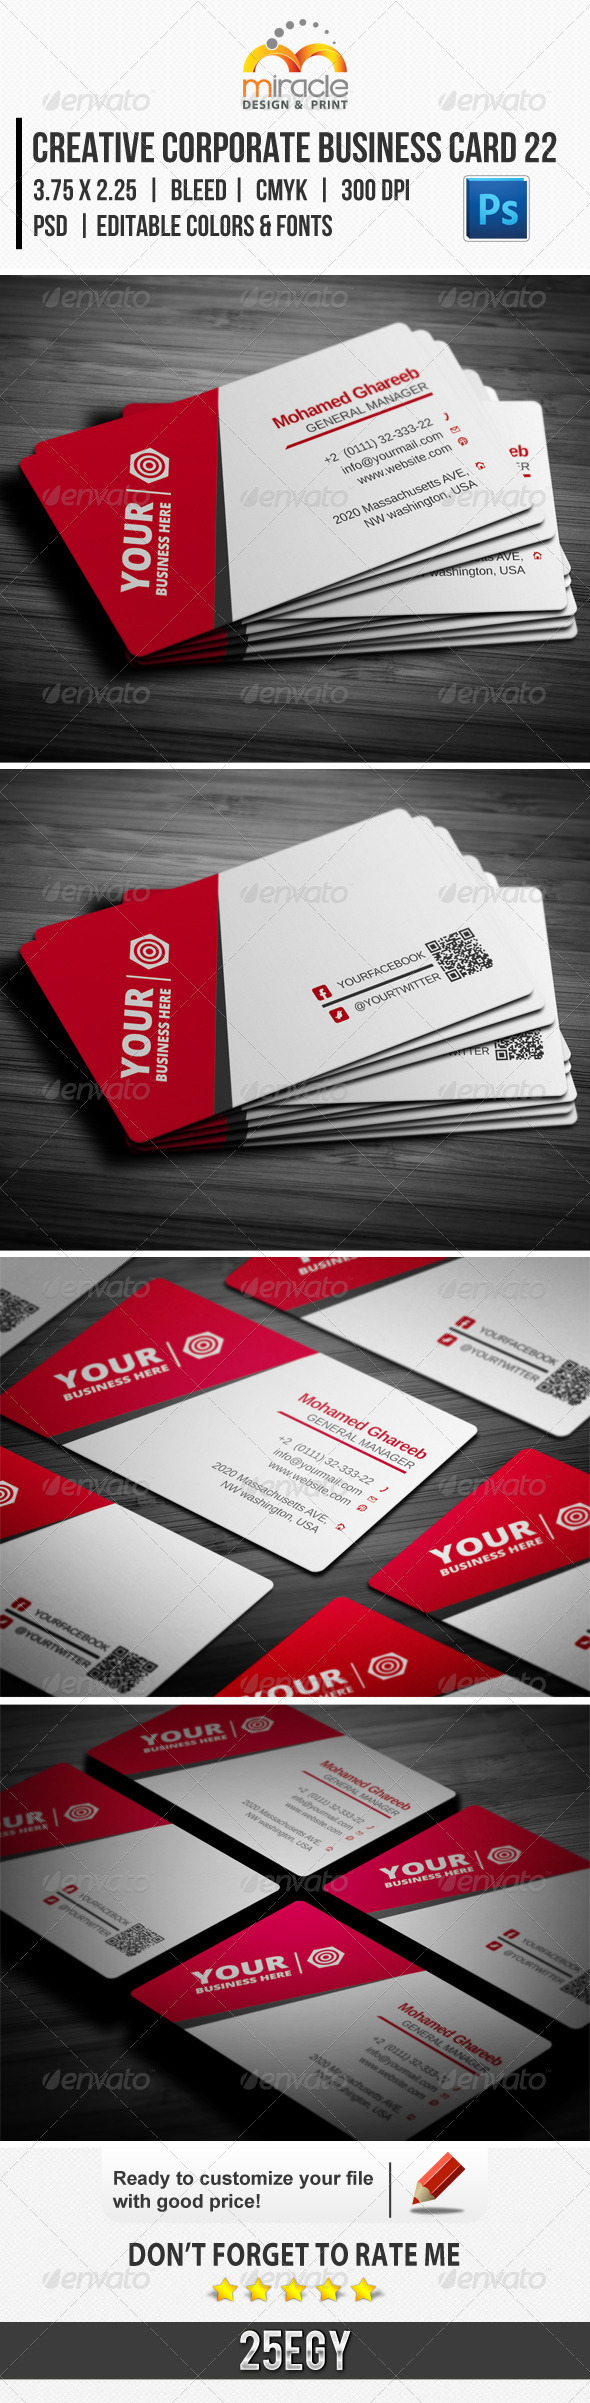 GraphicRiver Creative Corporate Business Card 22 5982149